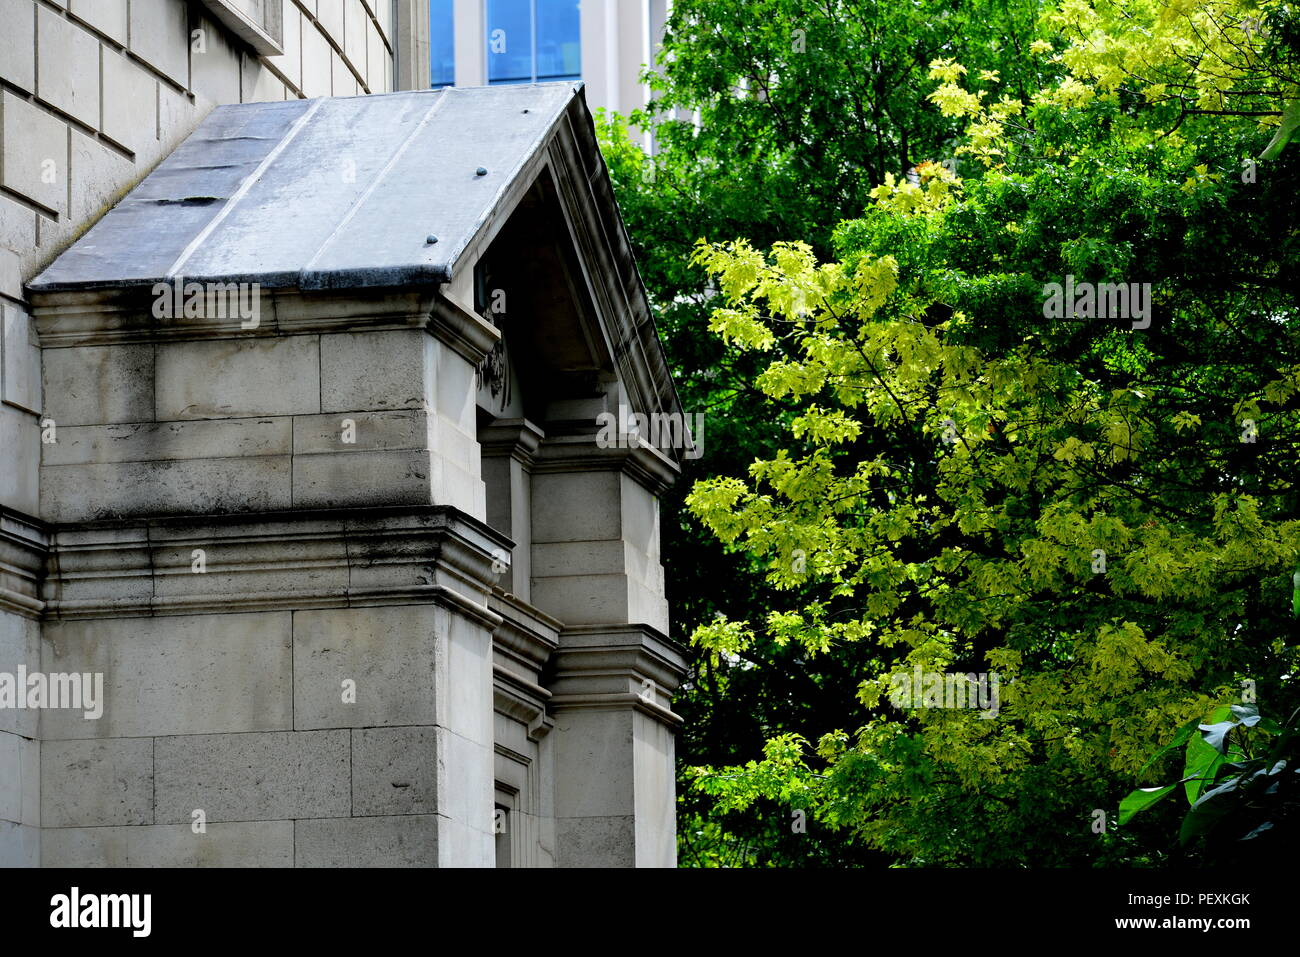 Manchester central Library - Stock Image